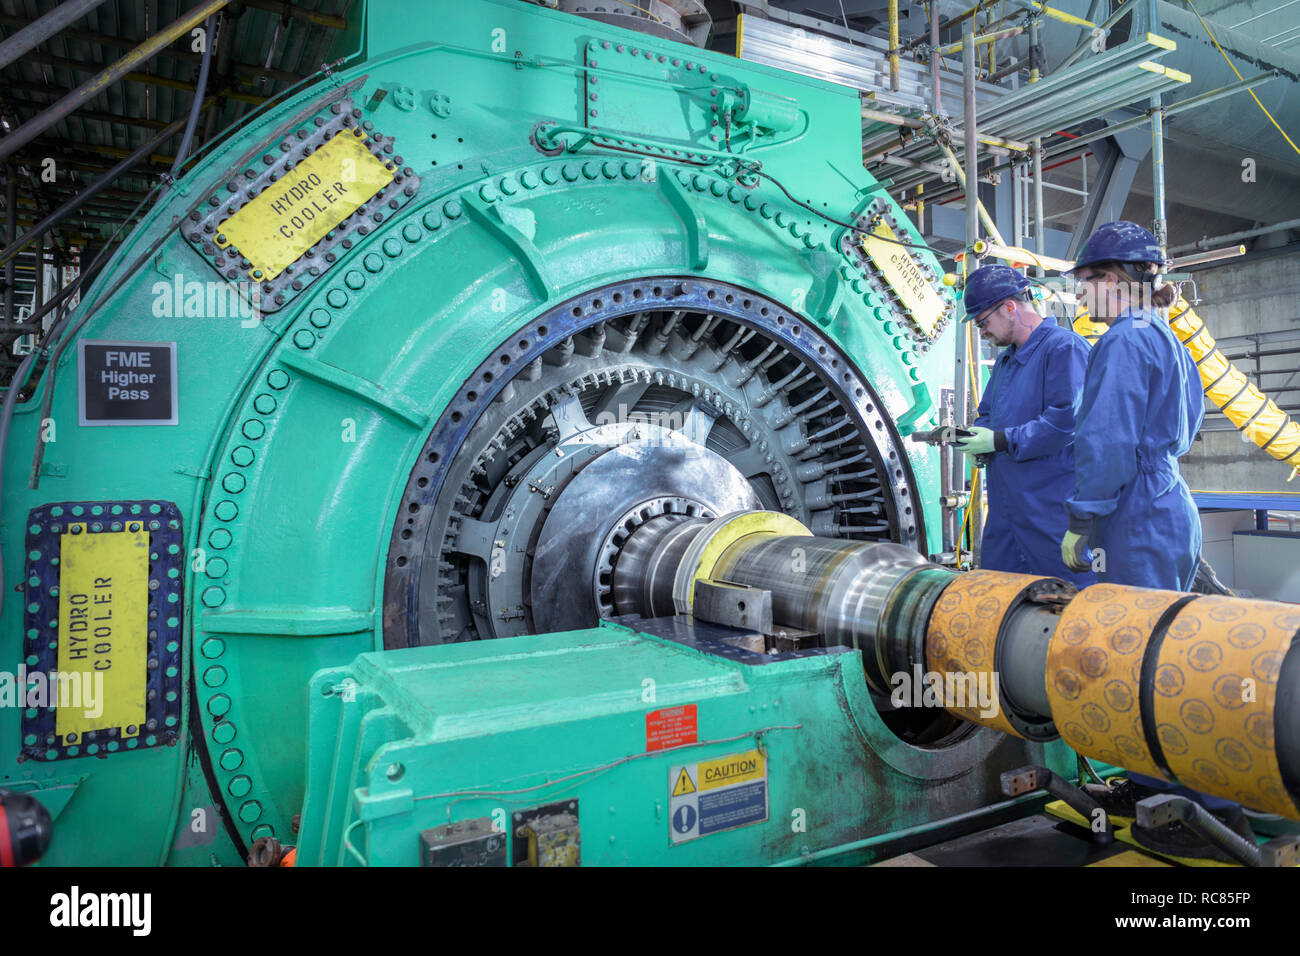 Engineers inspecting generator in nuclear power station during outage - Stock Image